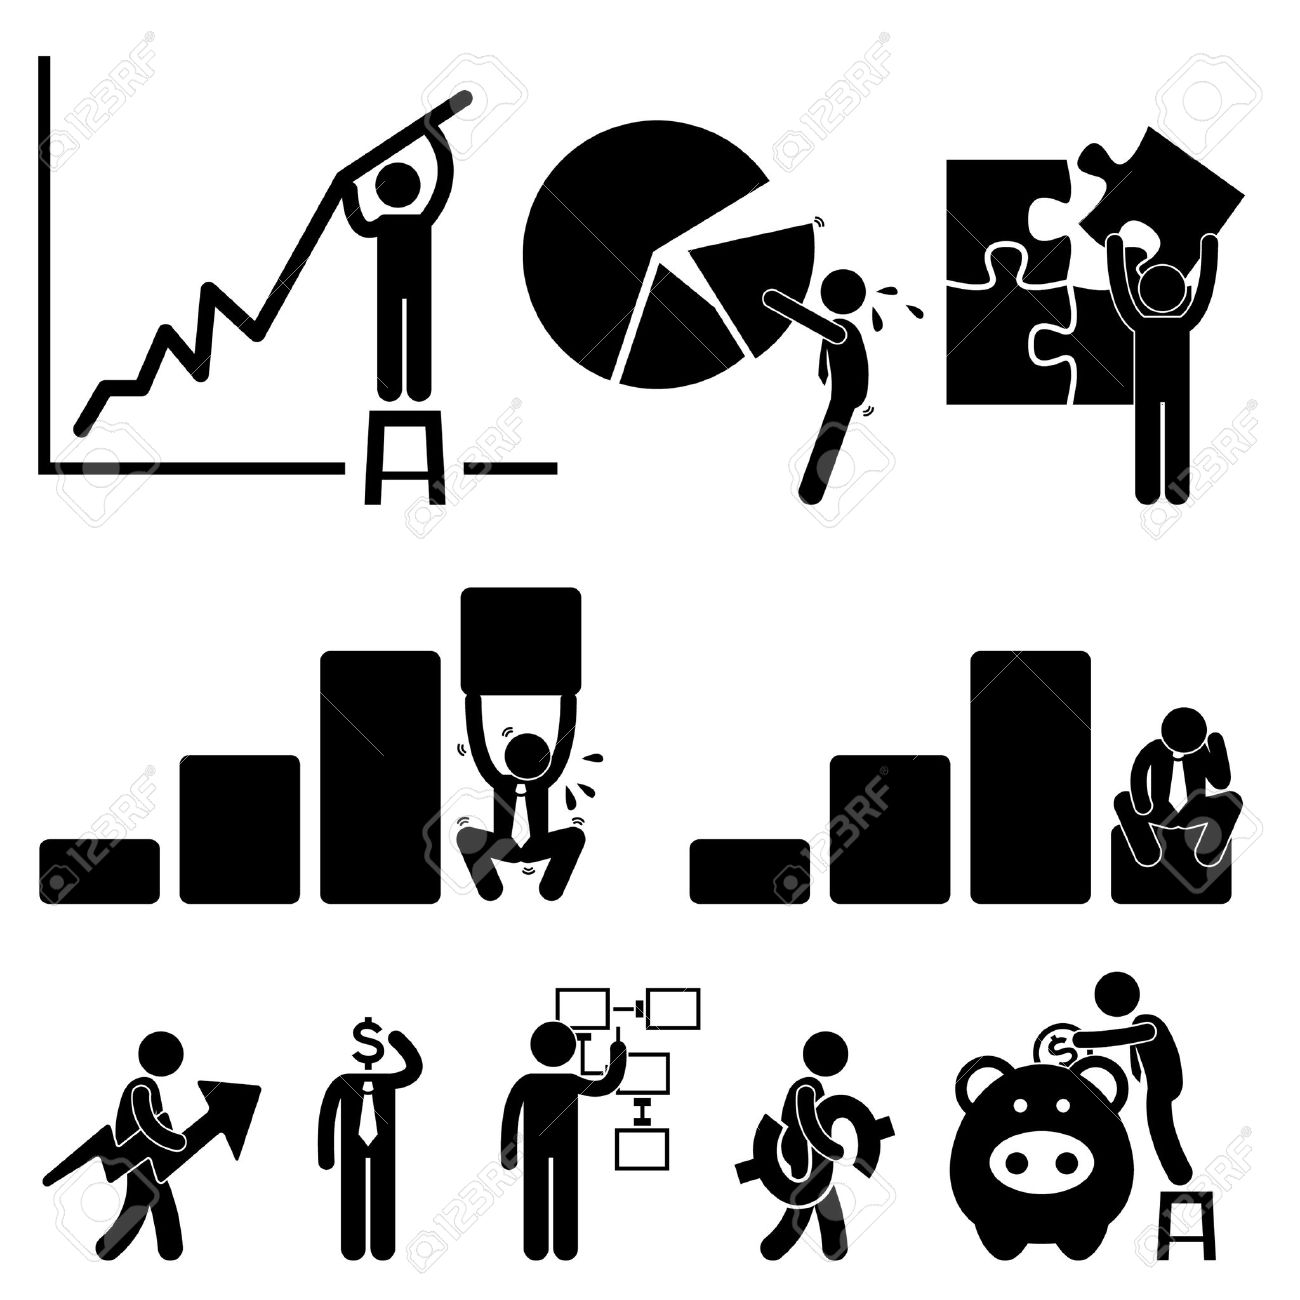 business finance chart employee worker businessman solution icon